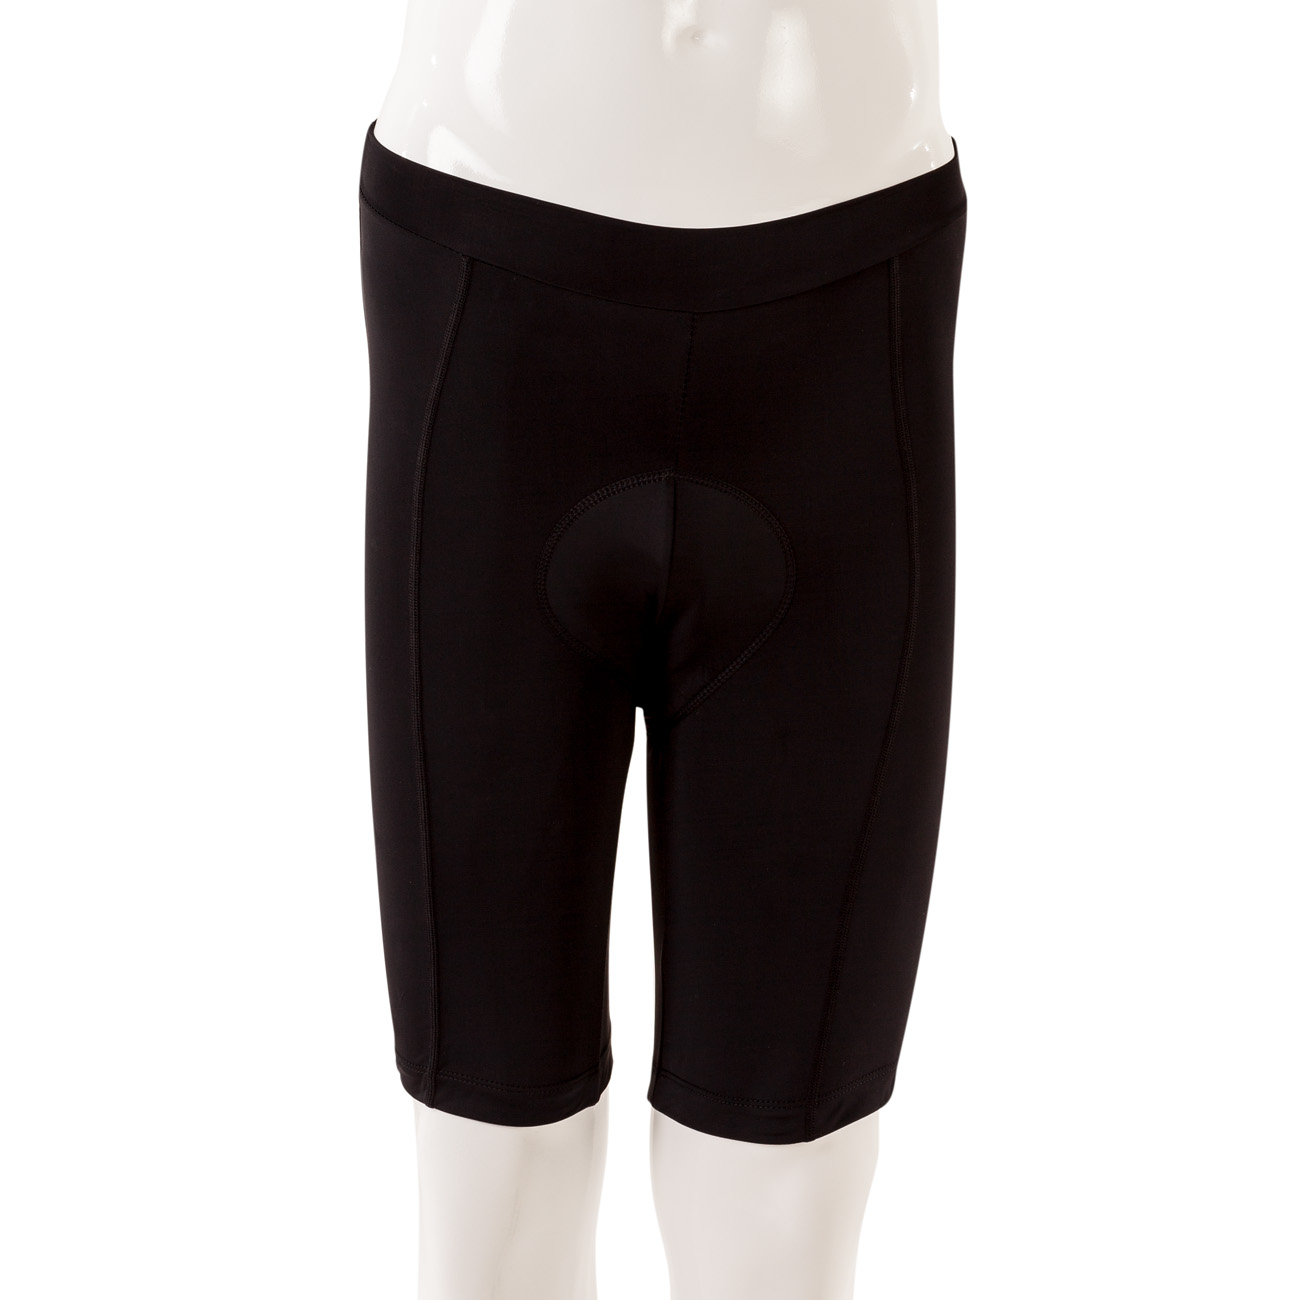 XMR Mens Cycling Short - Black